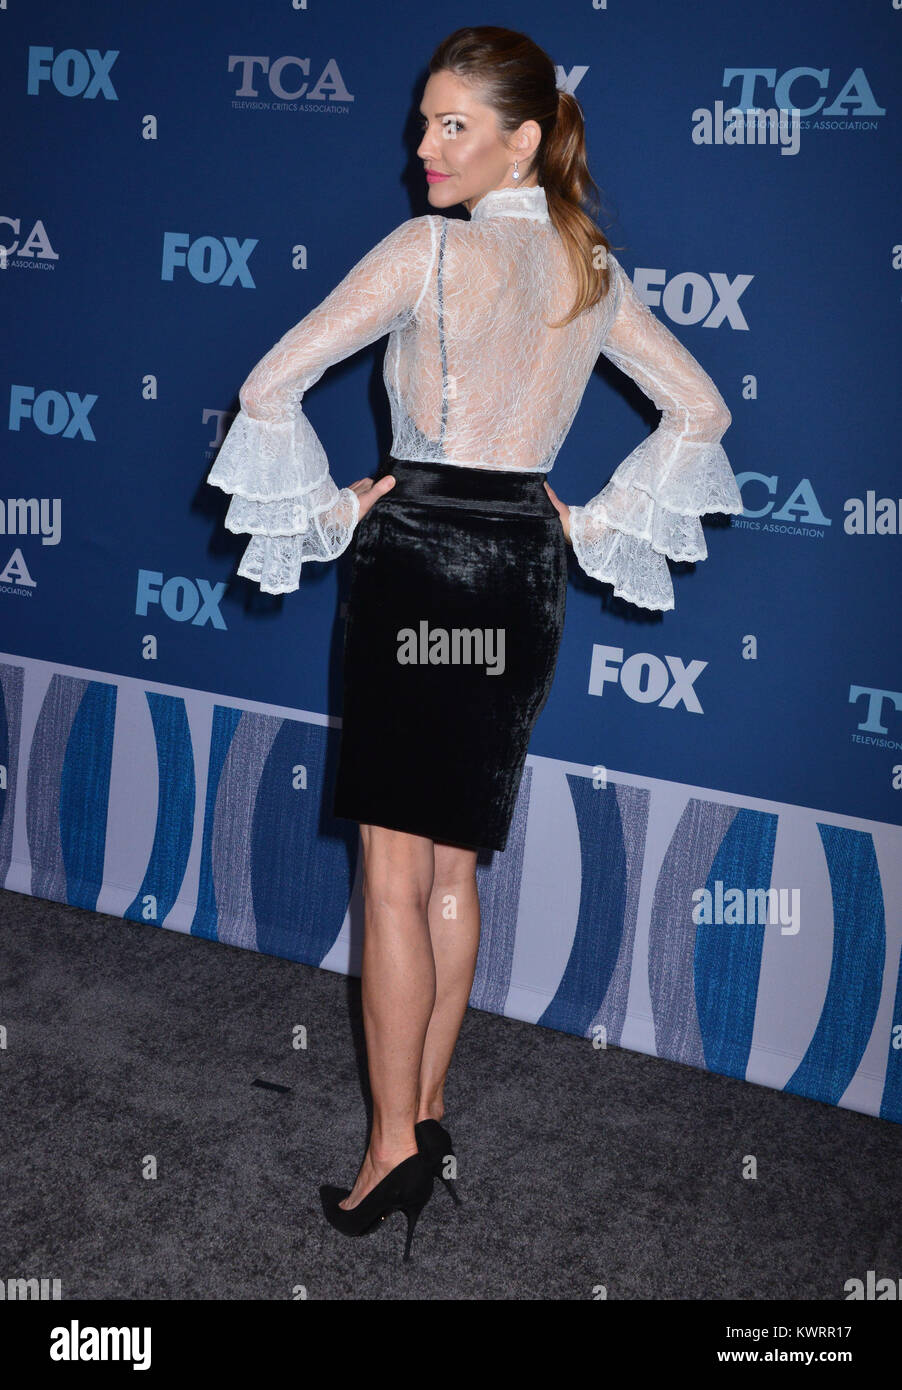 Tricia Helfer 041 Attends The Fox All Star Party During The 2018 Winter Tca Tour At The Langham Huntington Pasadena On January 4 2018 In Pasadena